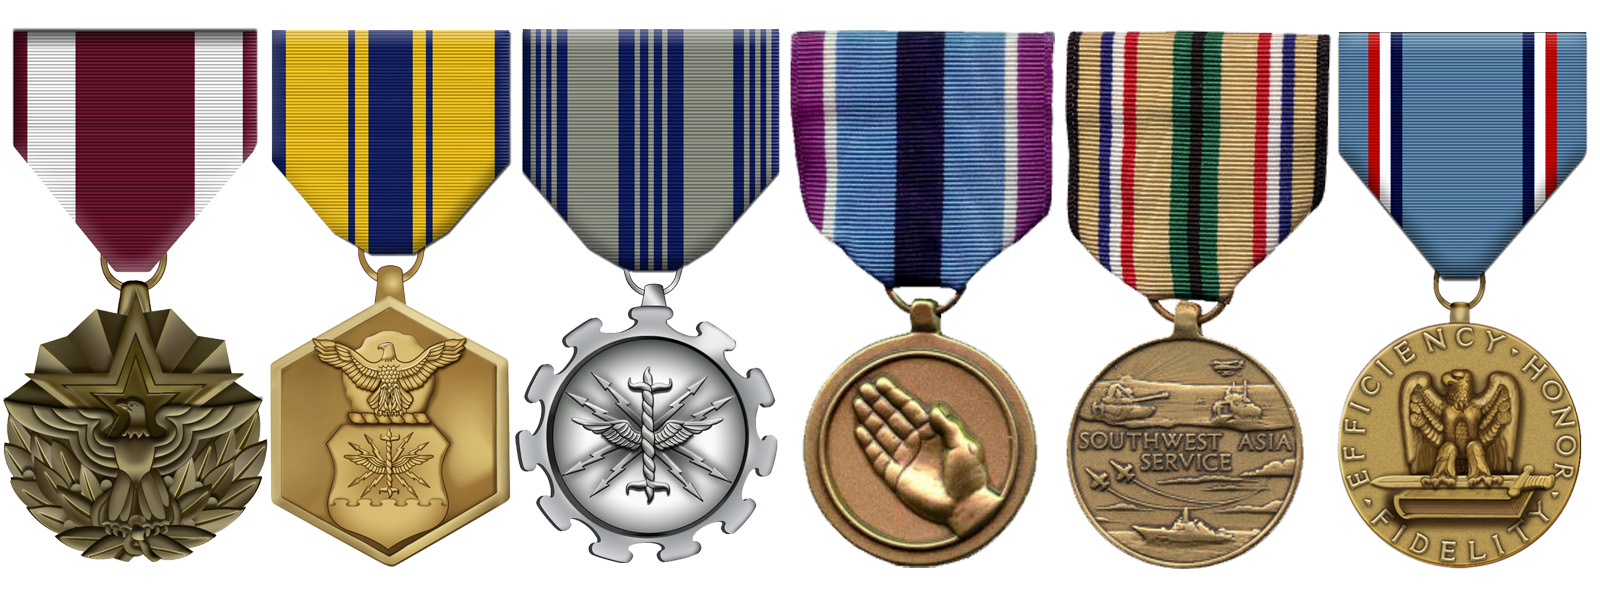 Fastdownloaddel blog for Air force awards and decoration